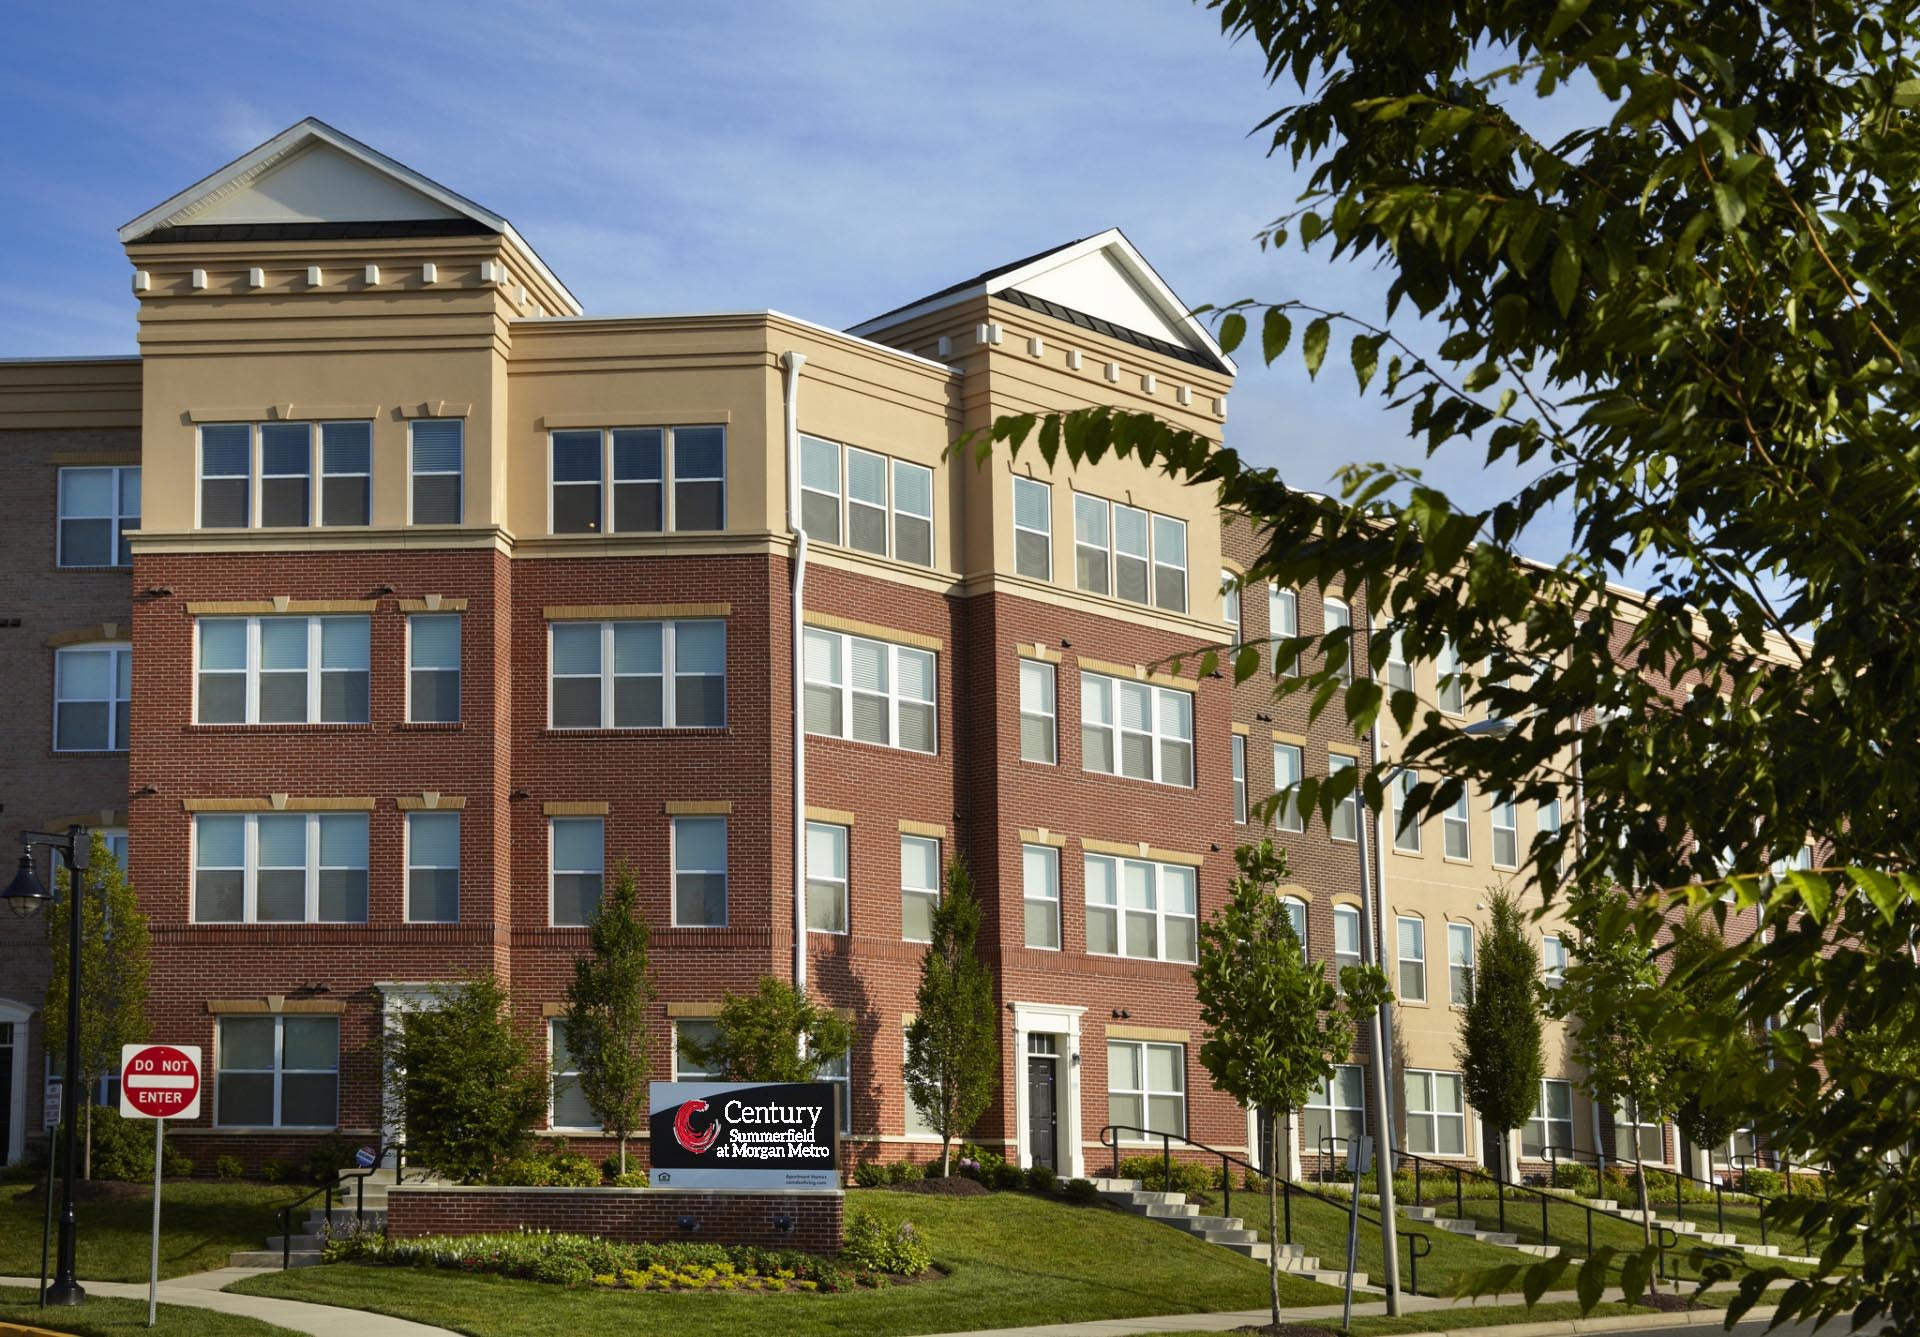 Century Summerfield @ Morgan Metro - Apartments for rent